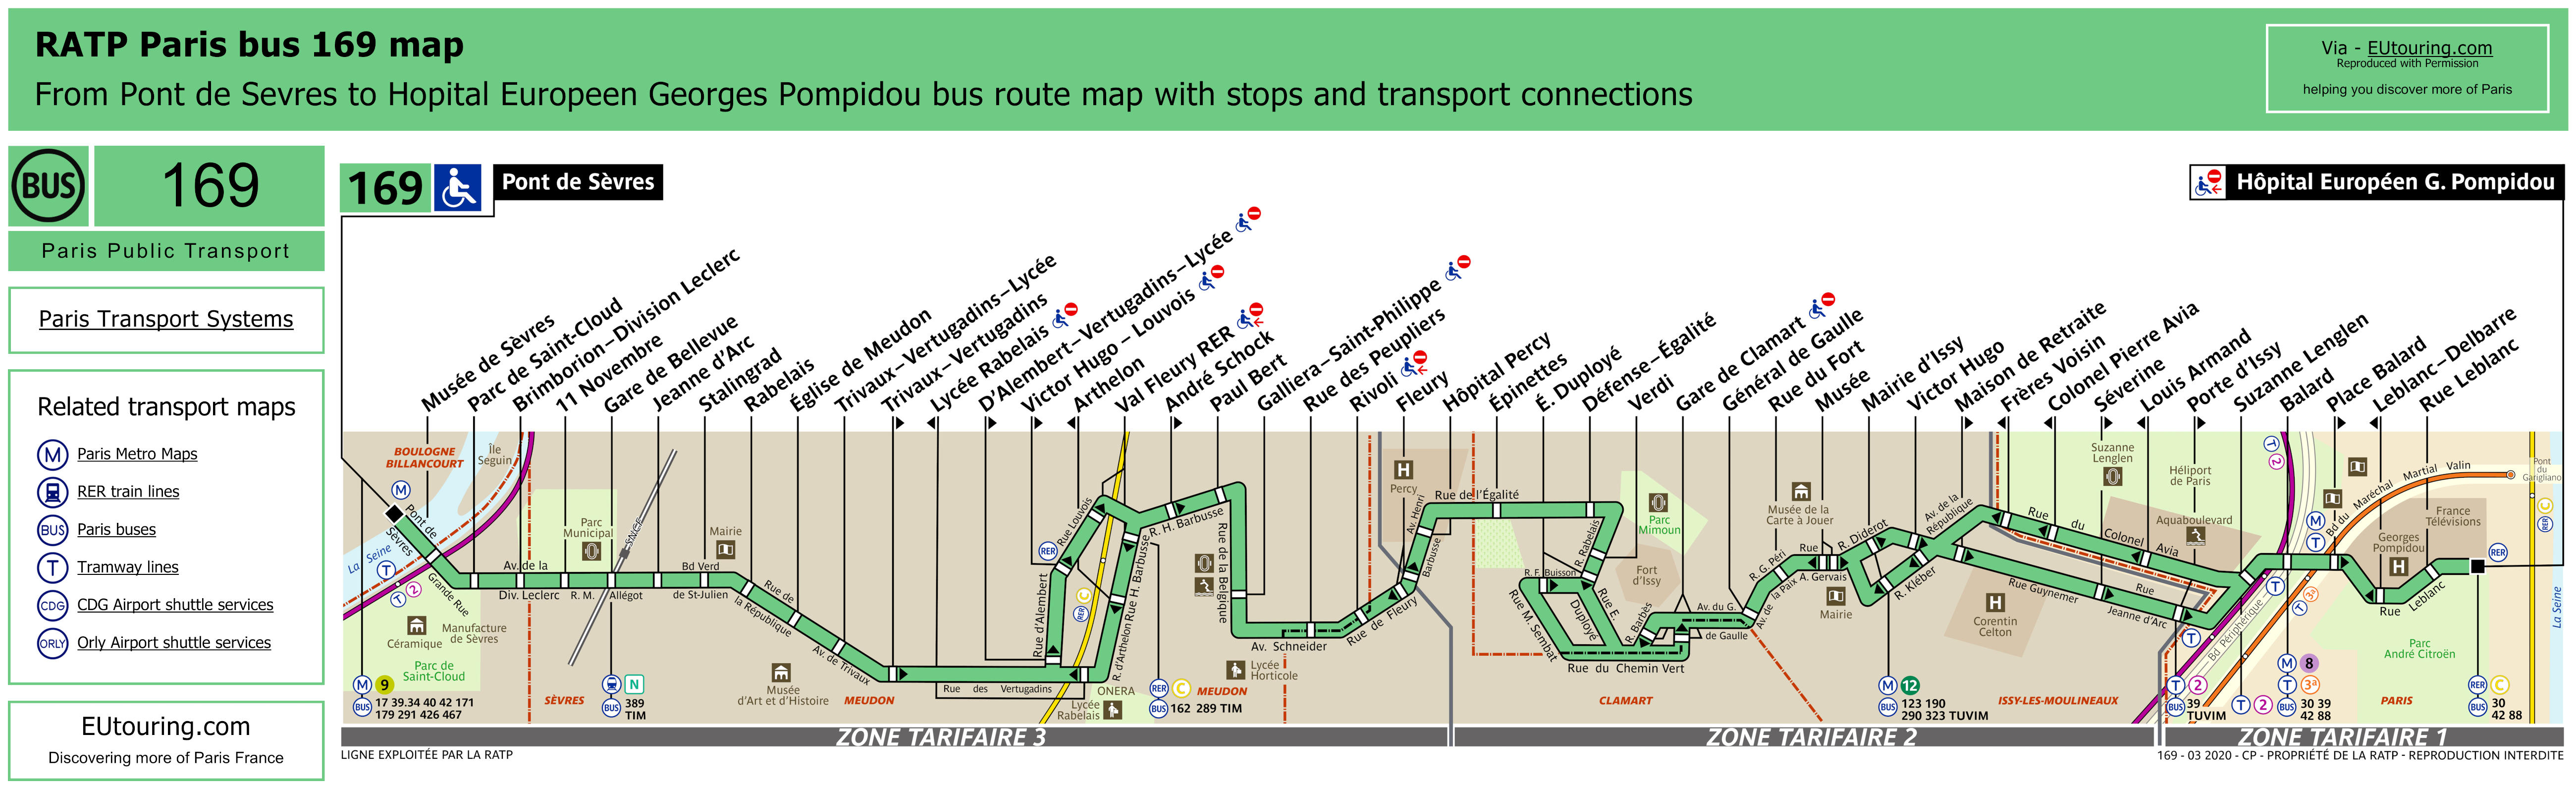 RATP route maps for Paris bus lines 160 through to 169 on